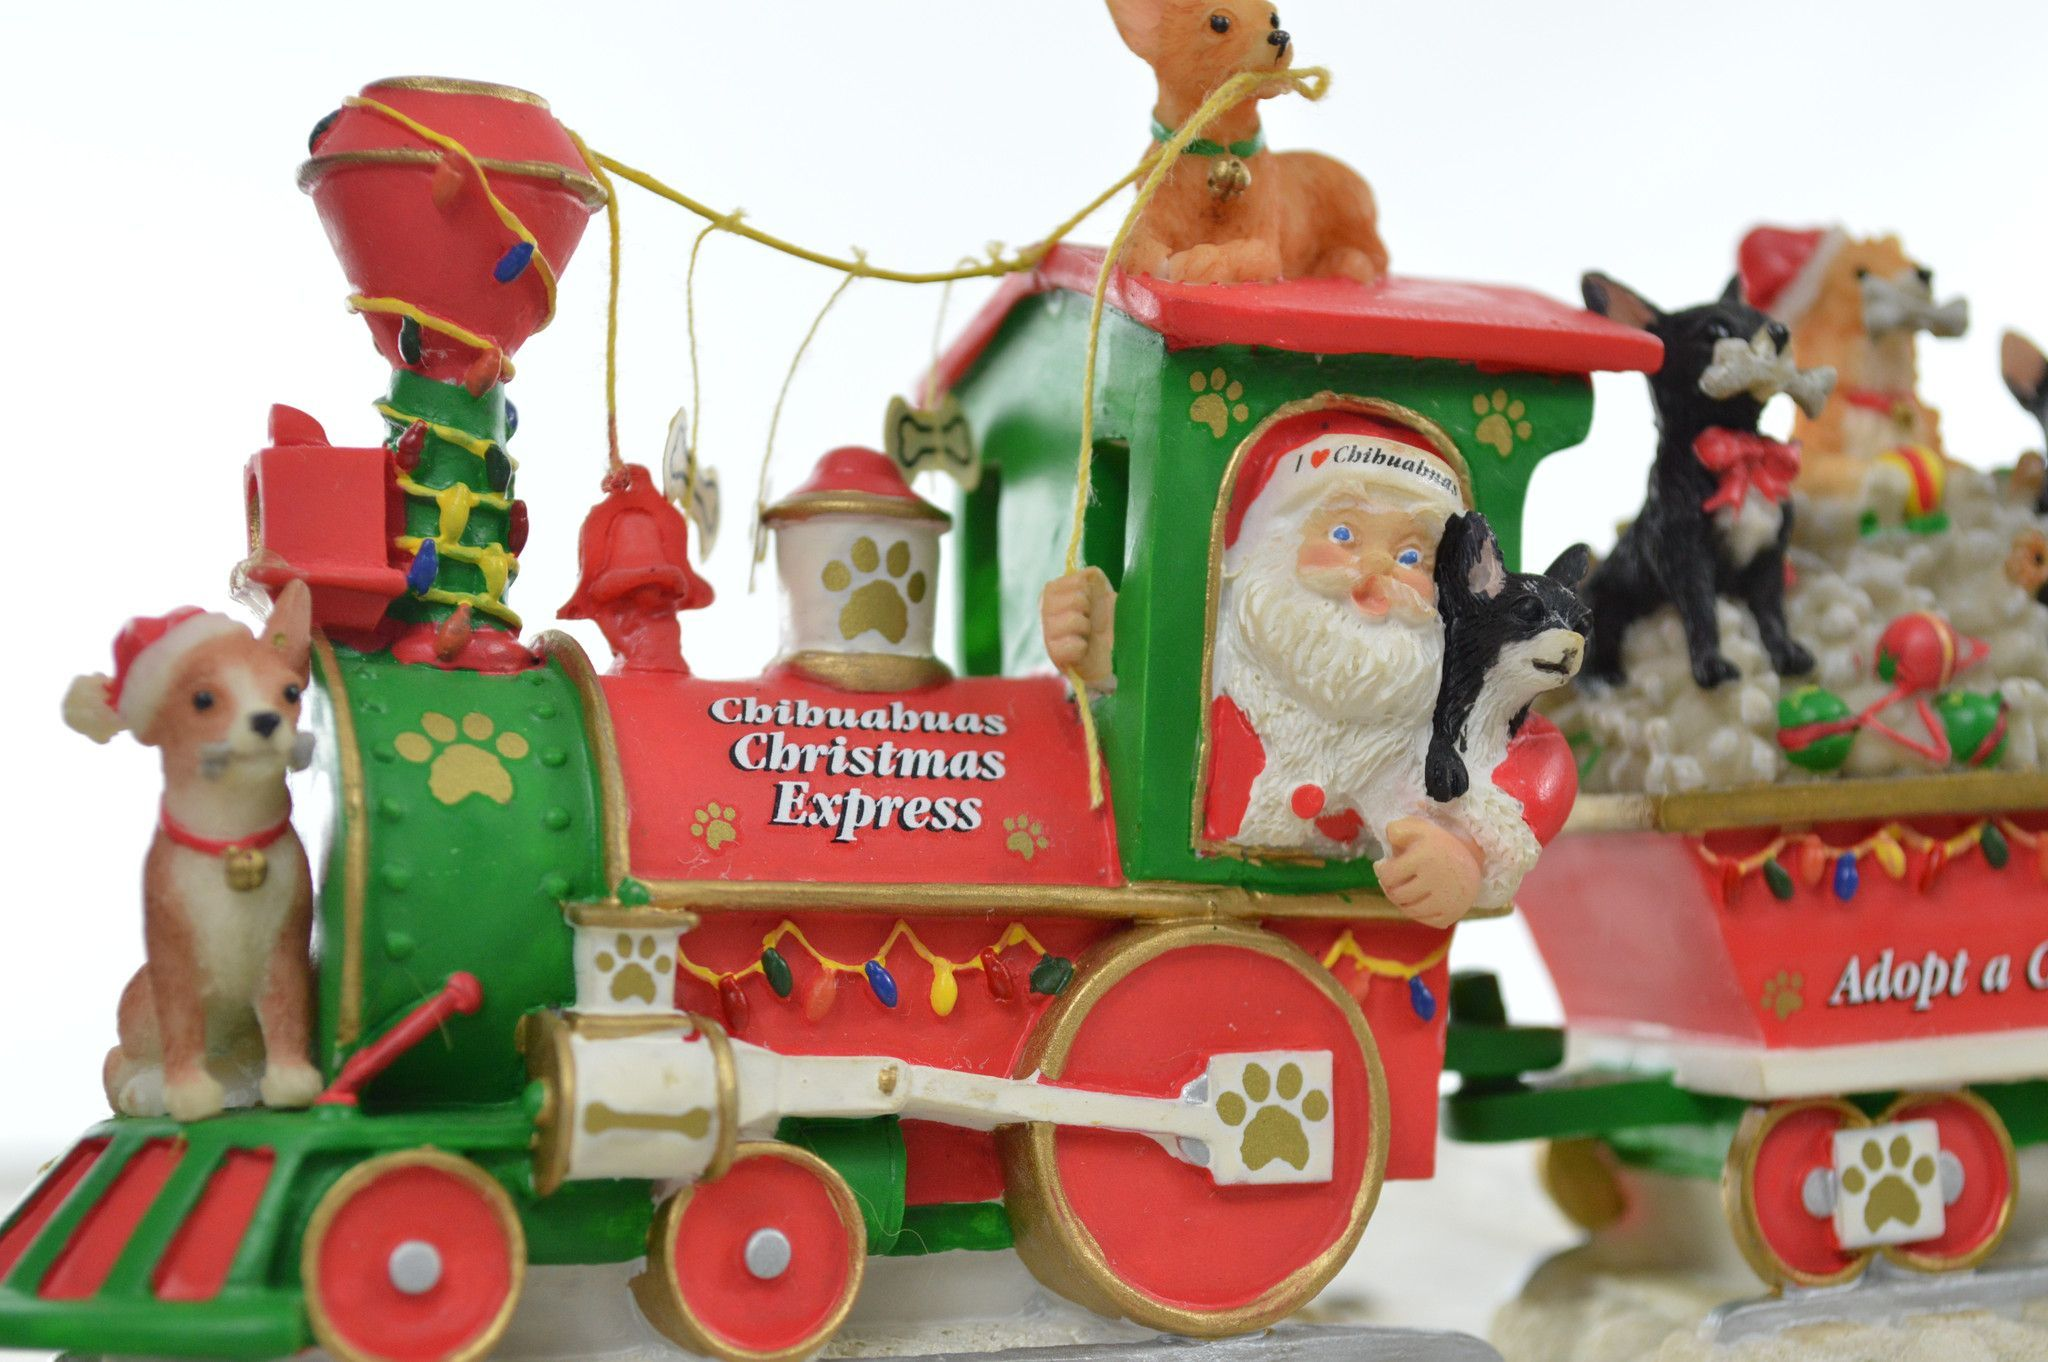 hight resolution of danbury mint chihuahua christmas express train sculpture in original packaging christmas clipart christmas nativity